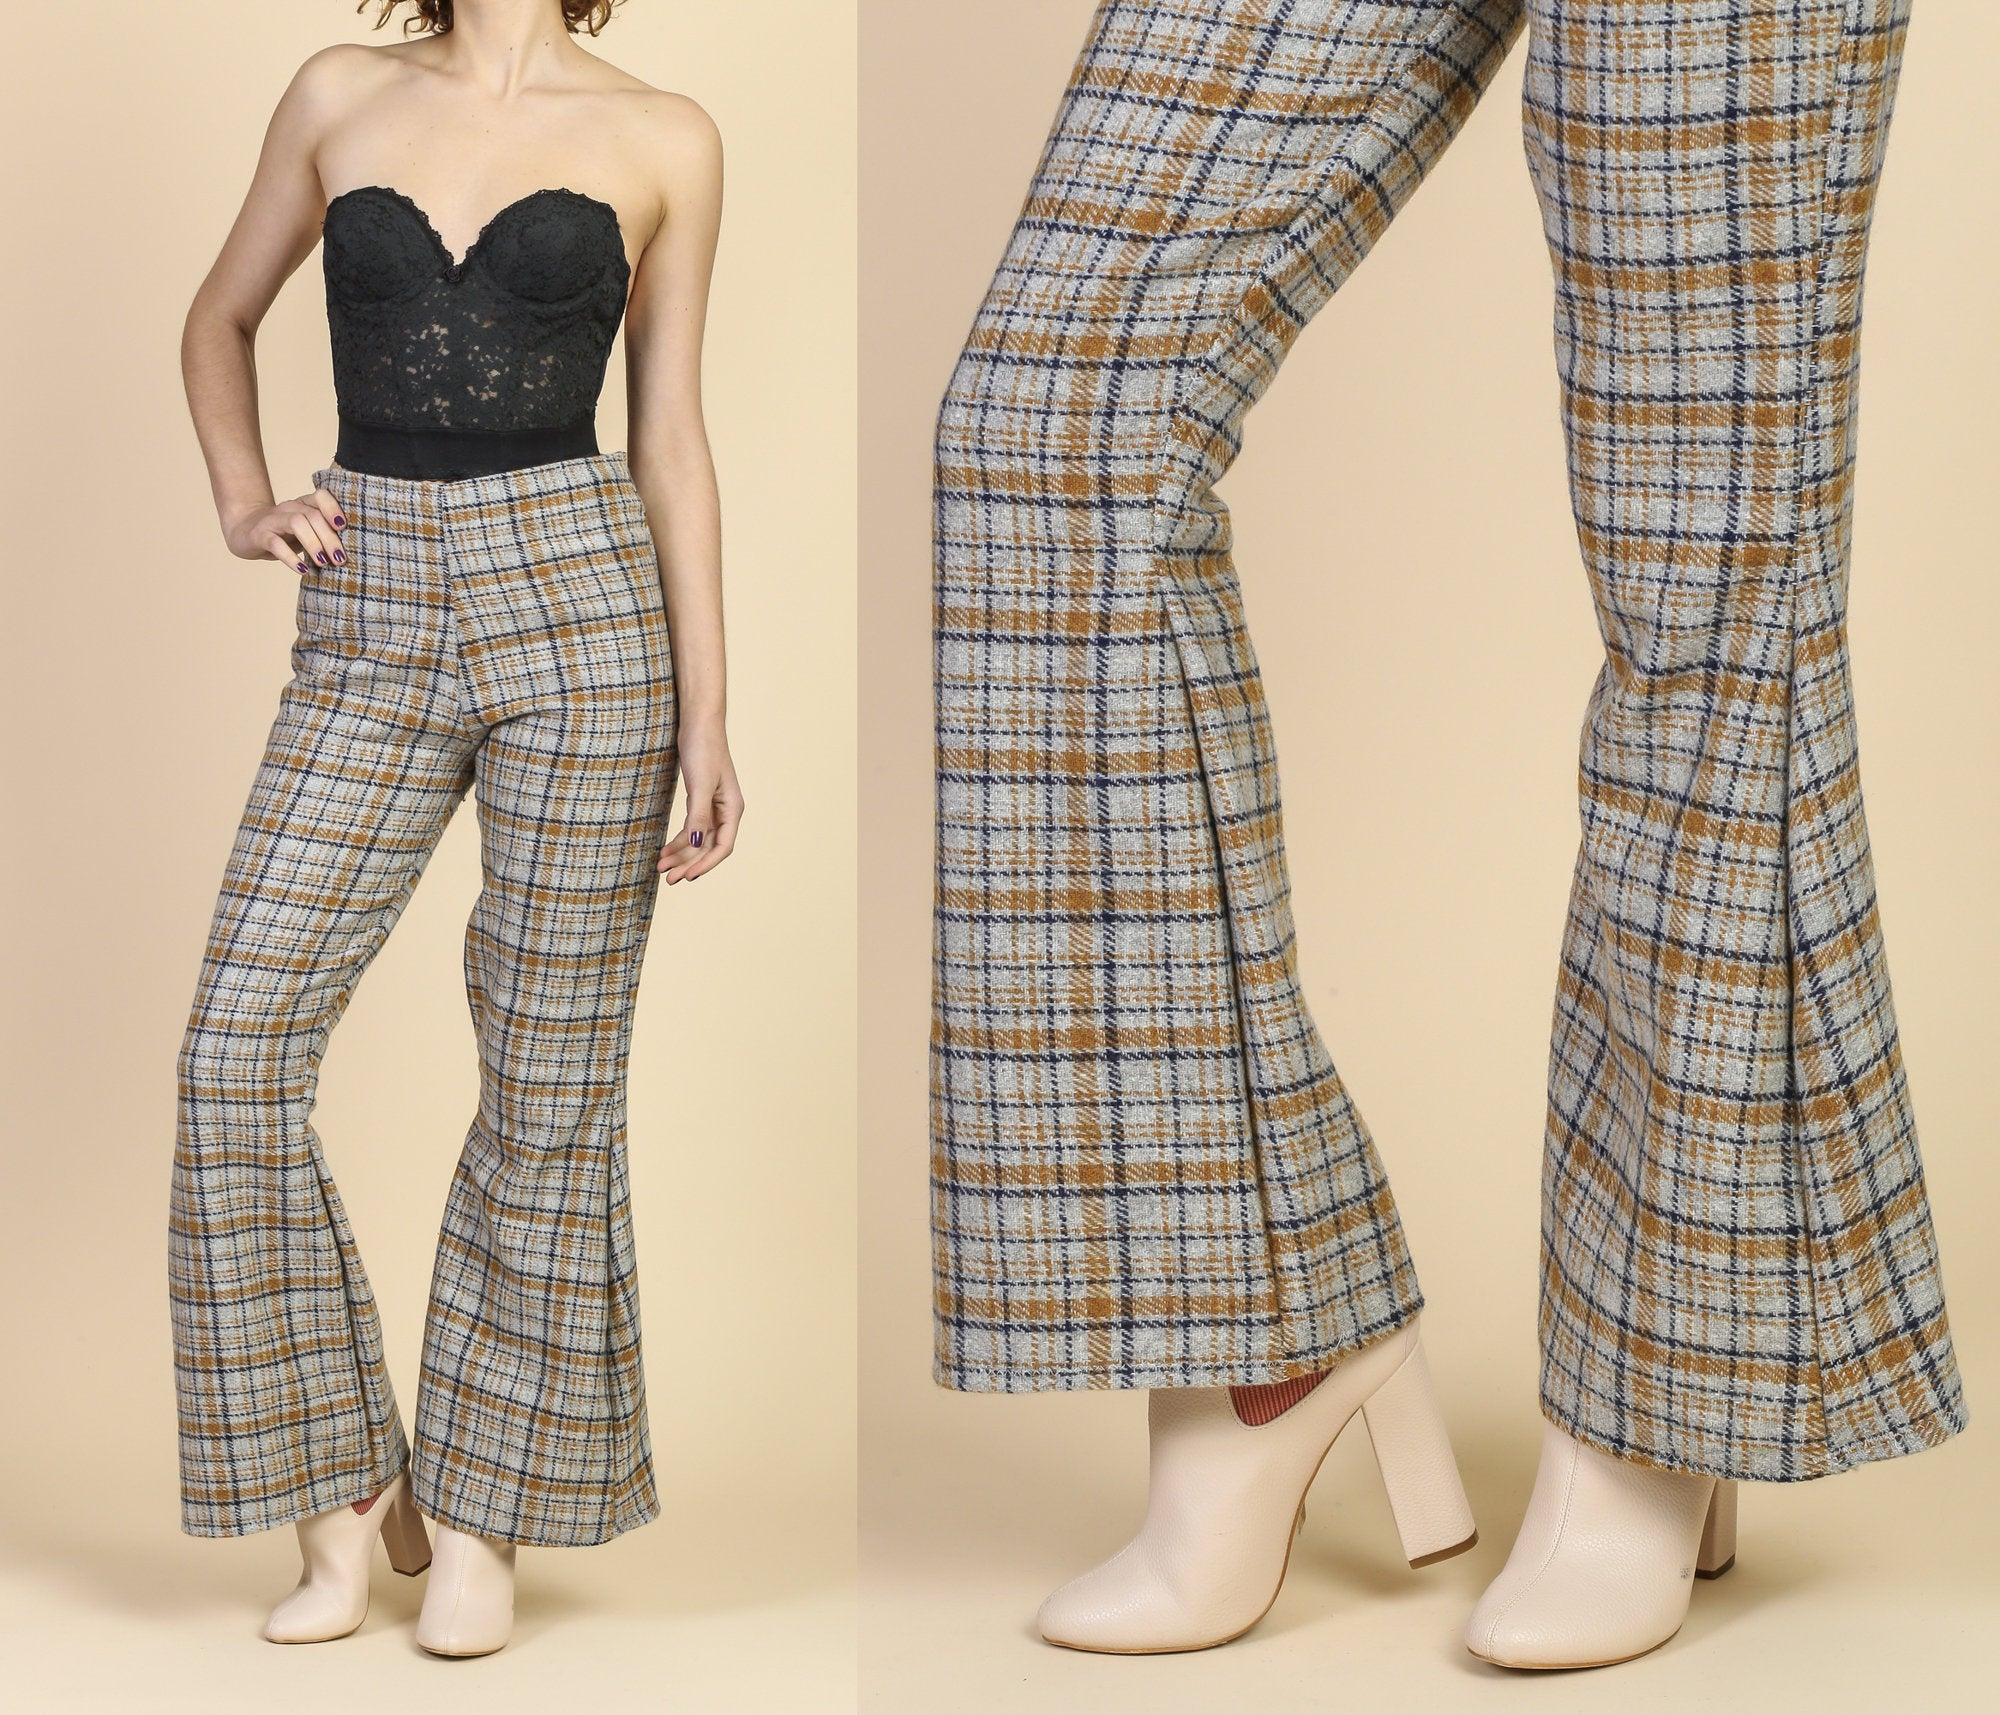 Brownbeige bell long trousers Made in Greece In excellent vintage condition. low waist retro pants 70s plaid pants M size